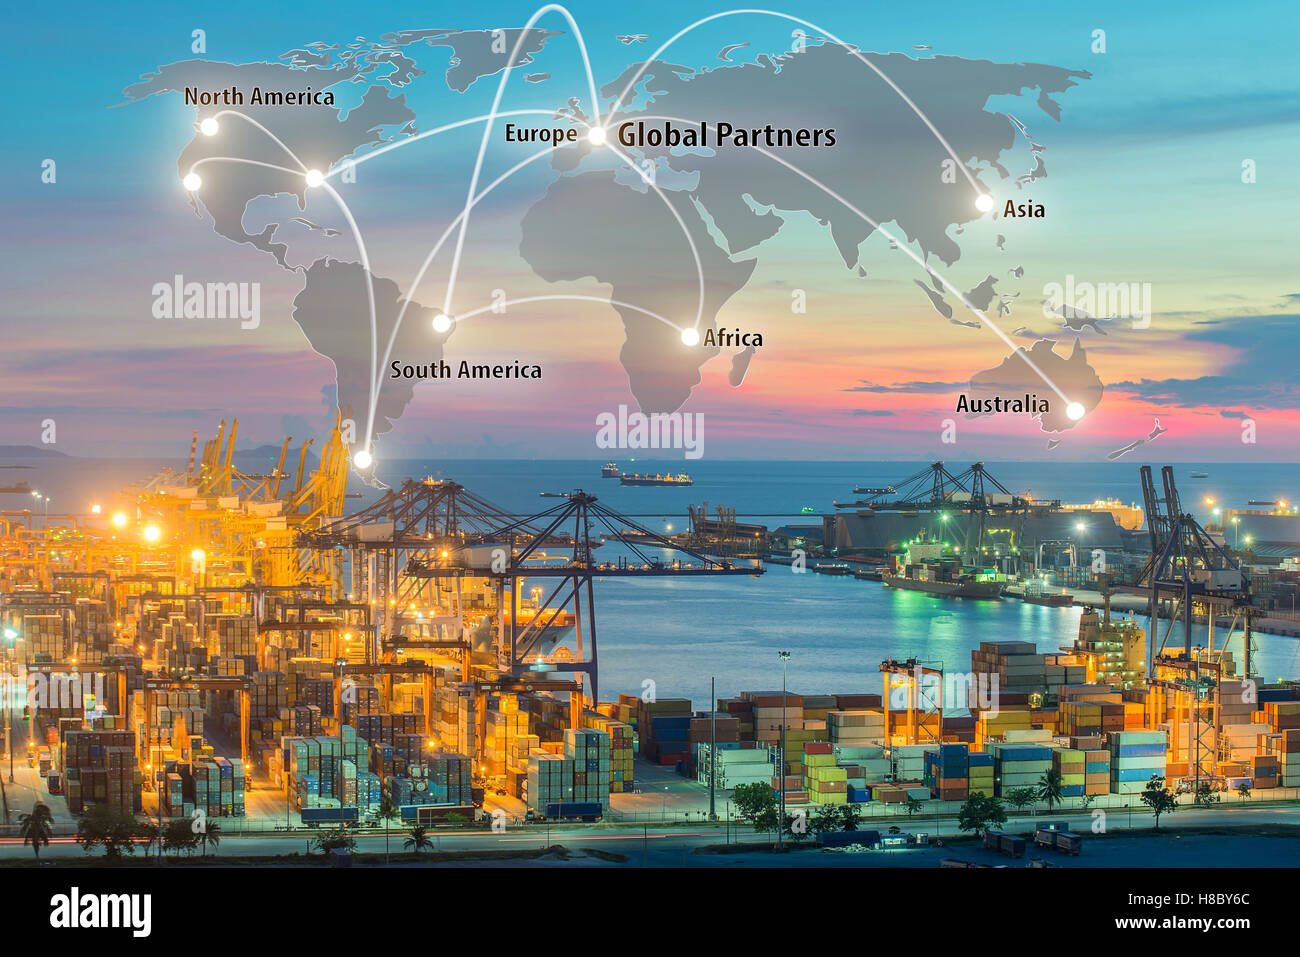 Map global logistics partnership connection of Container Cargo freight ship for Logistics Import Export background, - Stock Image